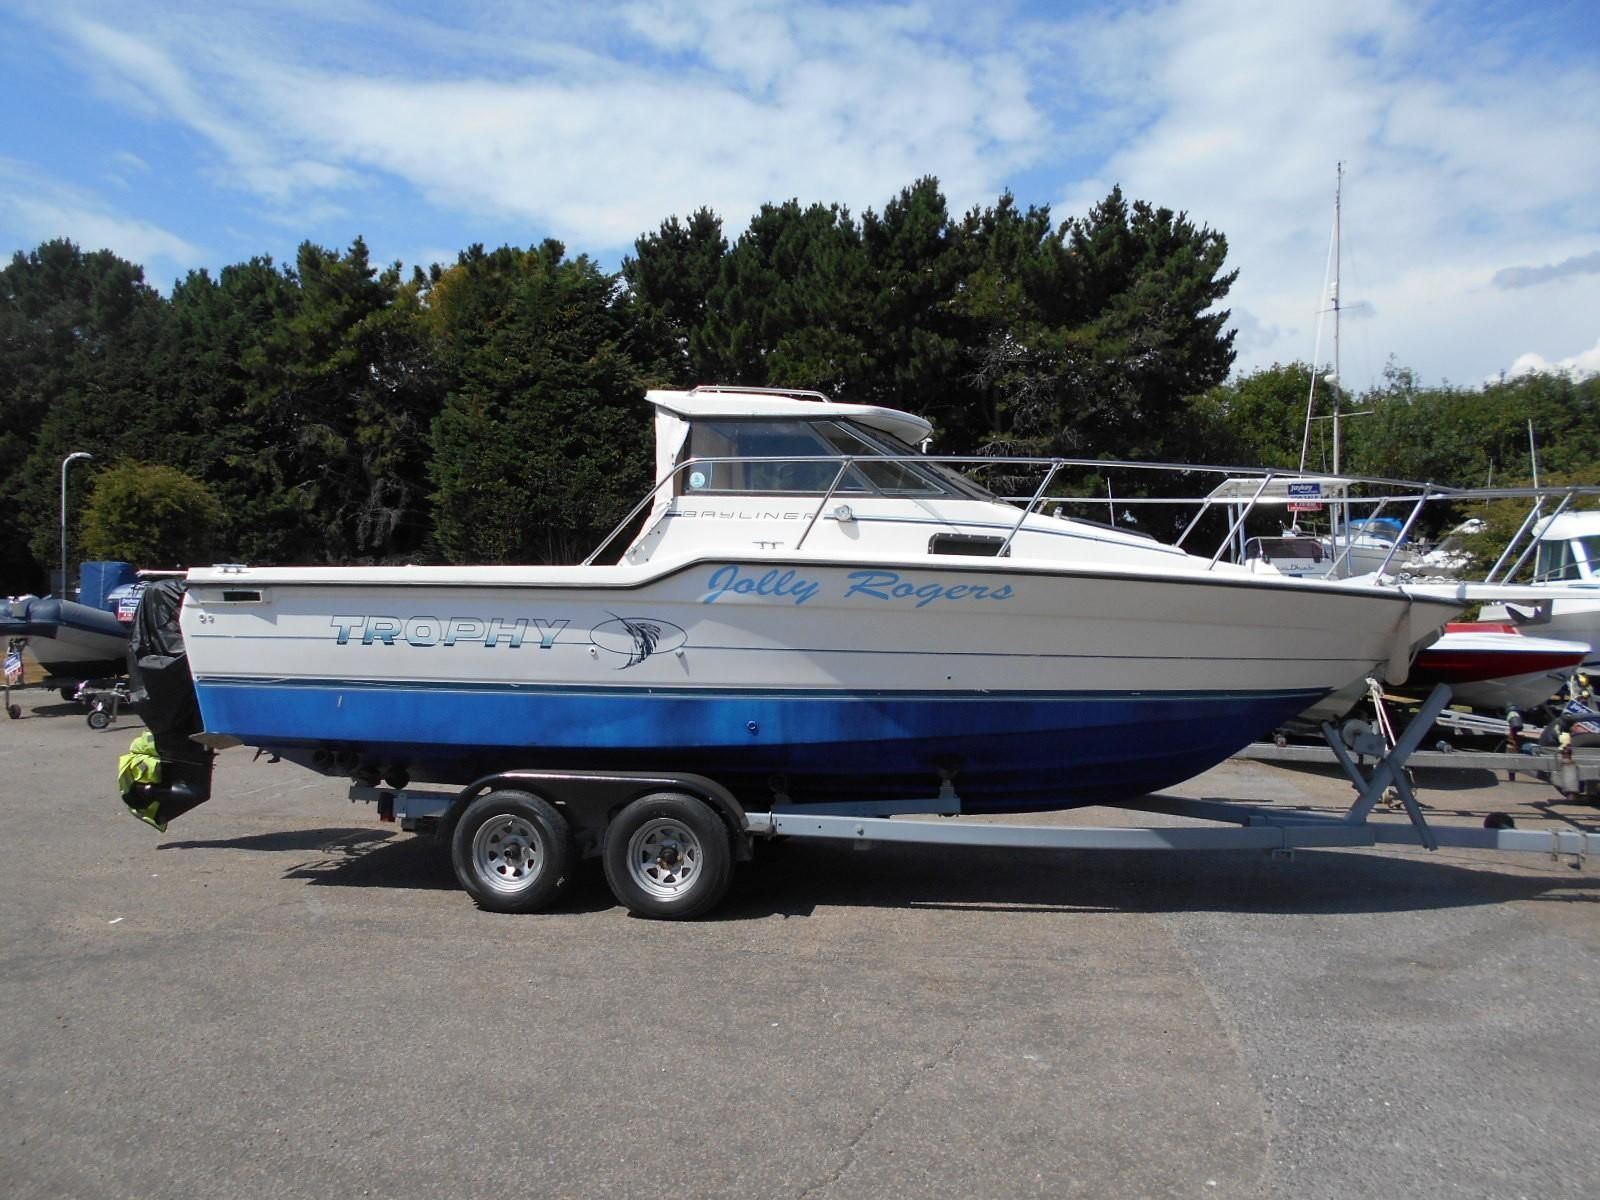 1990 Bayliner Trophy Power New and Used Boats for Sale -  www.yachtworld.co.uk